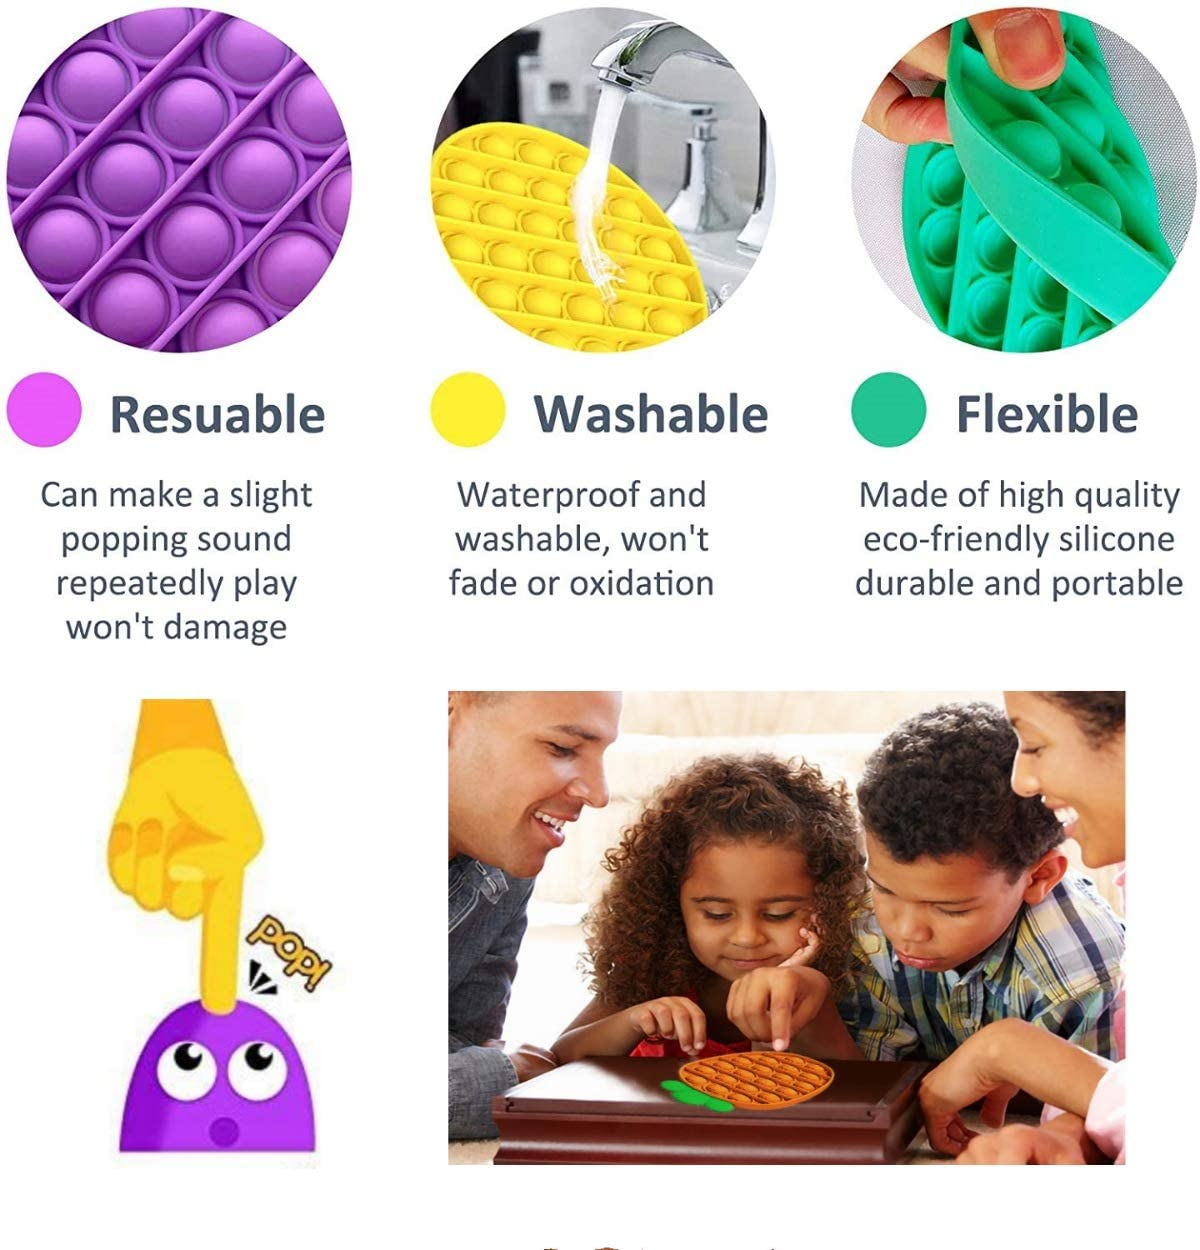 Silicone Stress Reliever Toy Suitable for Adults and Children Relieve Stress and Interact Push Pop Bubble Fidget Sensory Toy Squeeze Sensory Toy 4 Pack